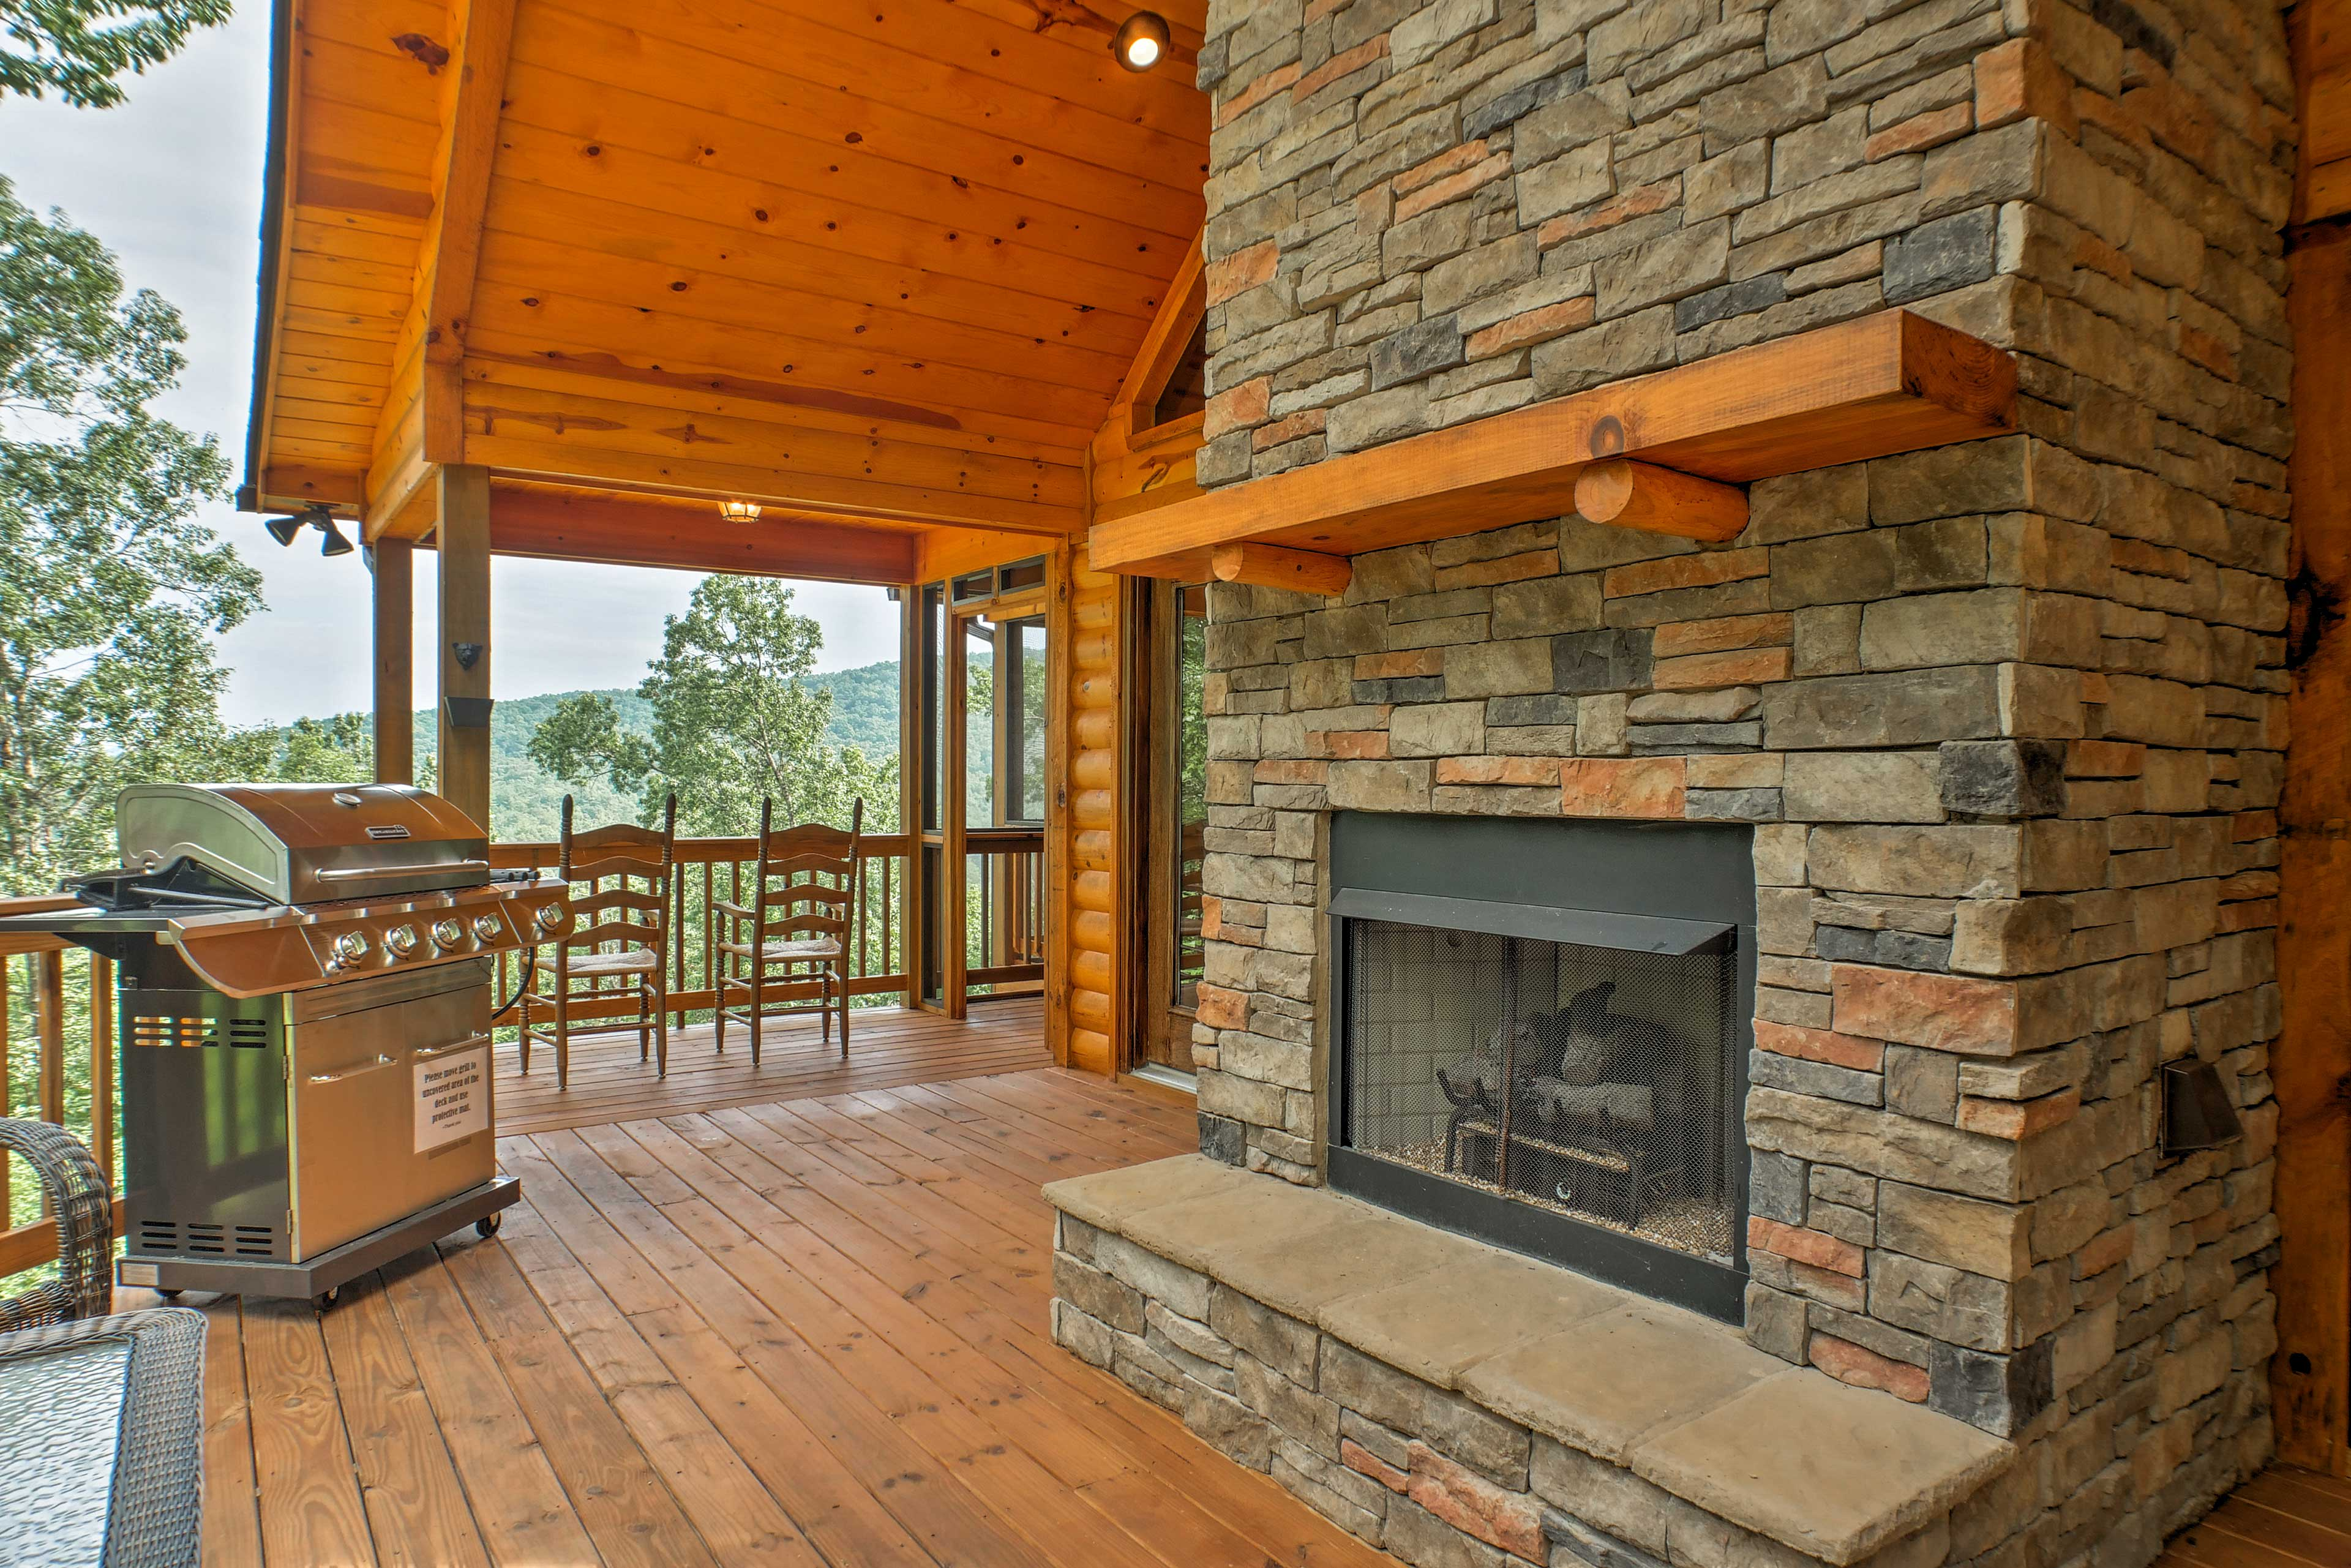 You'll love utilizing the marvelous outdoor space with a fireplace and grill.